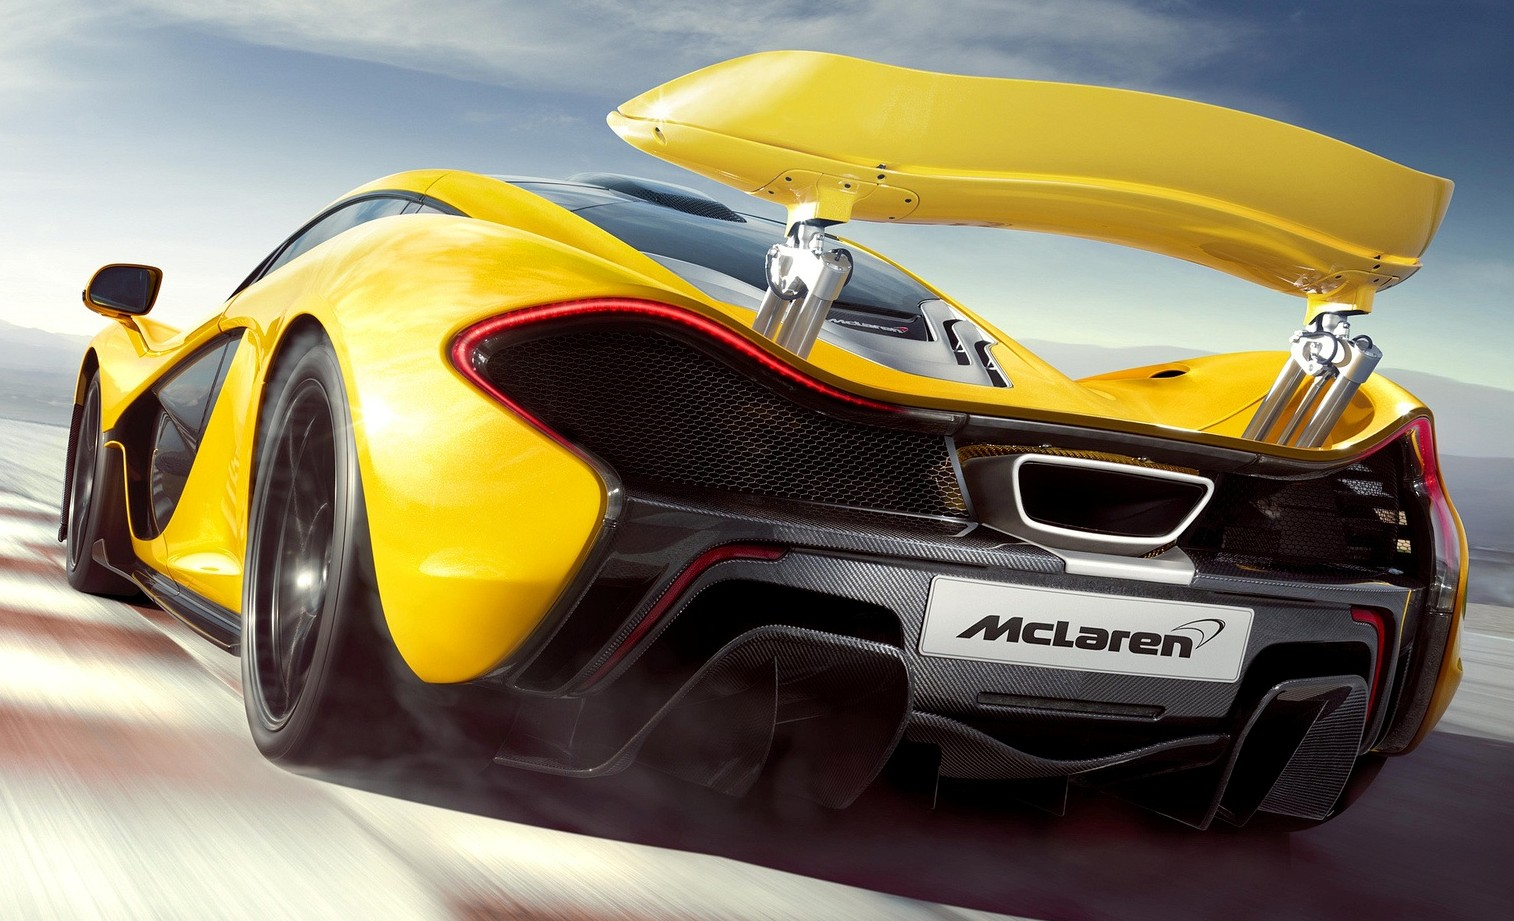 mclaren p1 les performances en quelques chiffres et le prix plan te. Black Bedroom Furniture Sets. Home Design Ideas